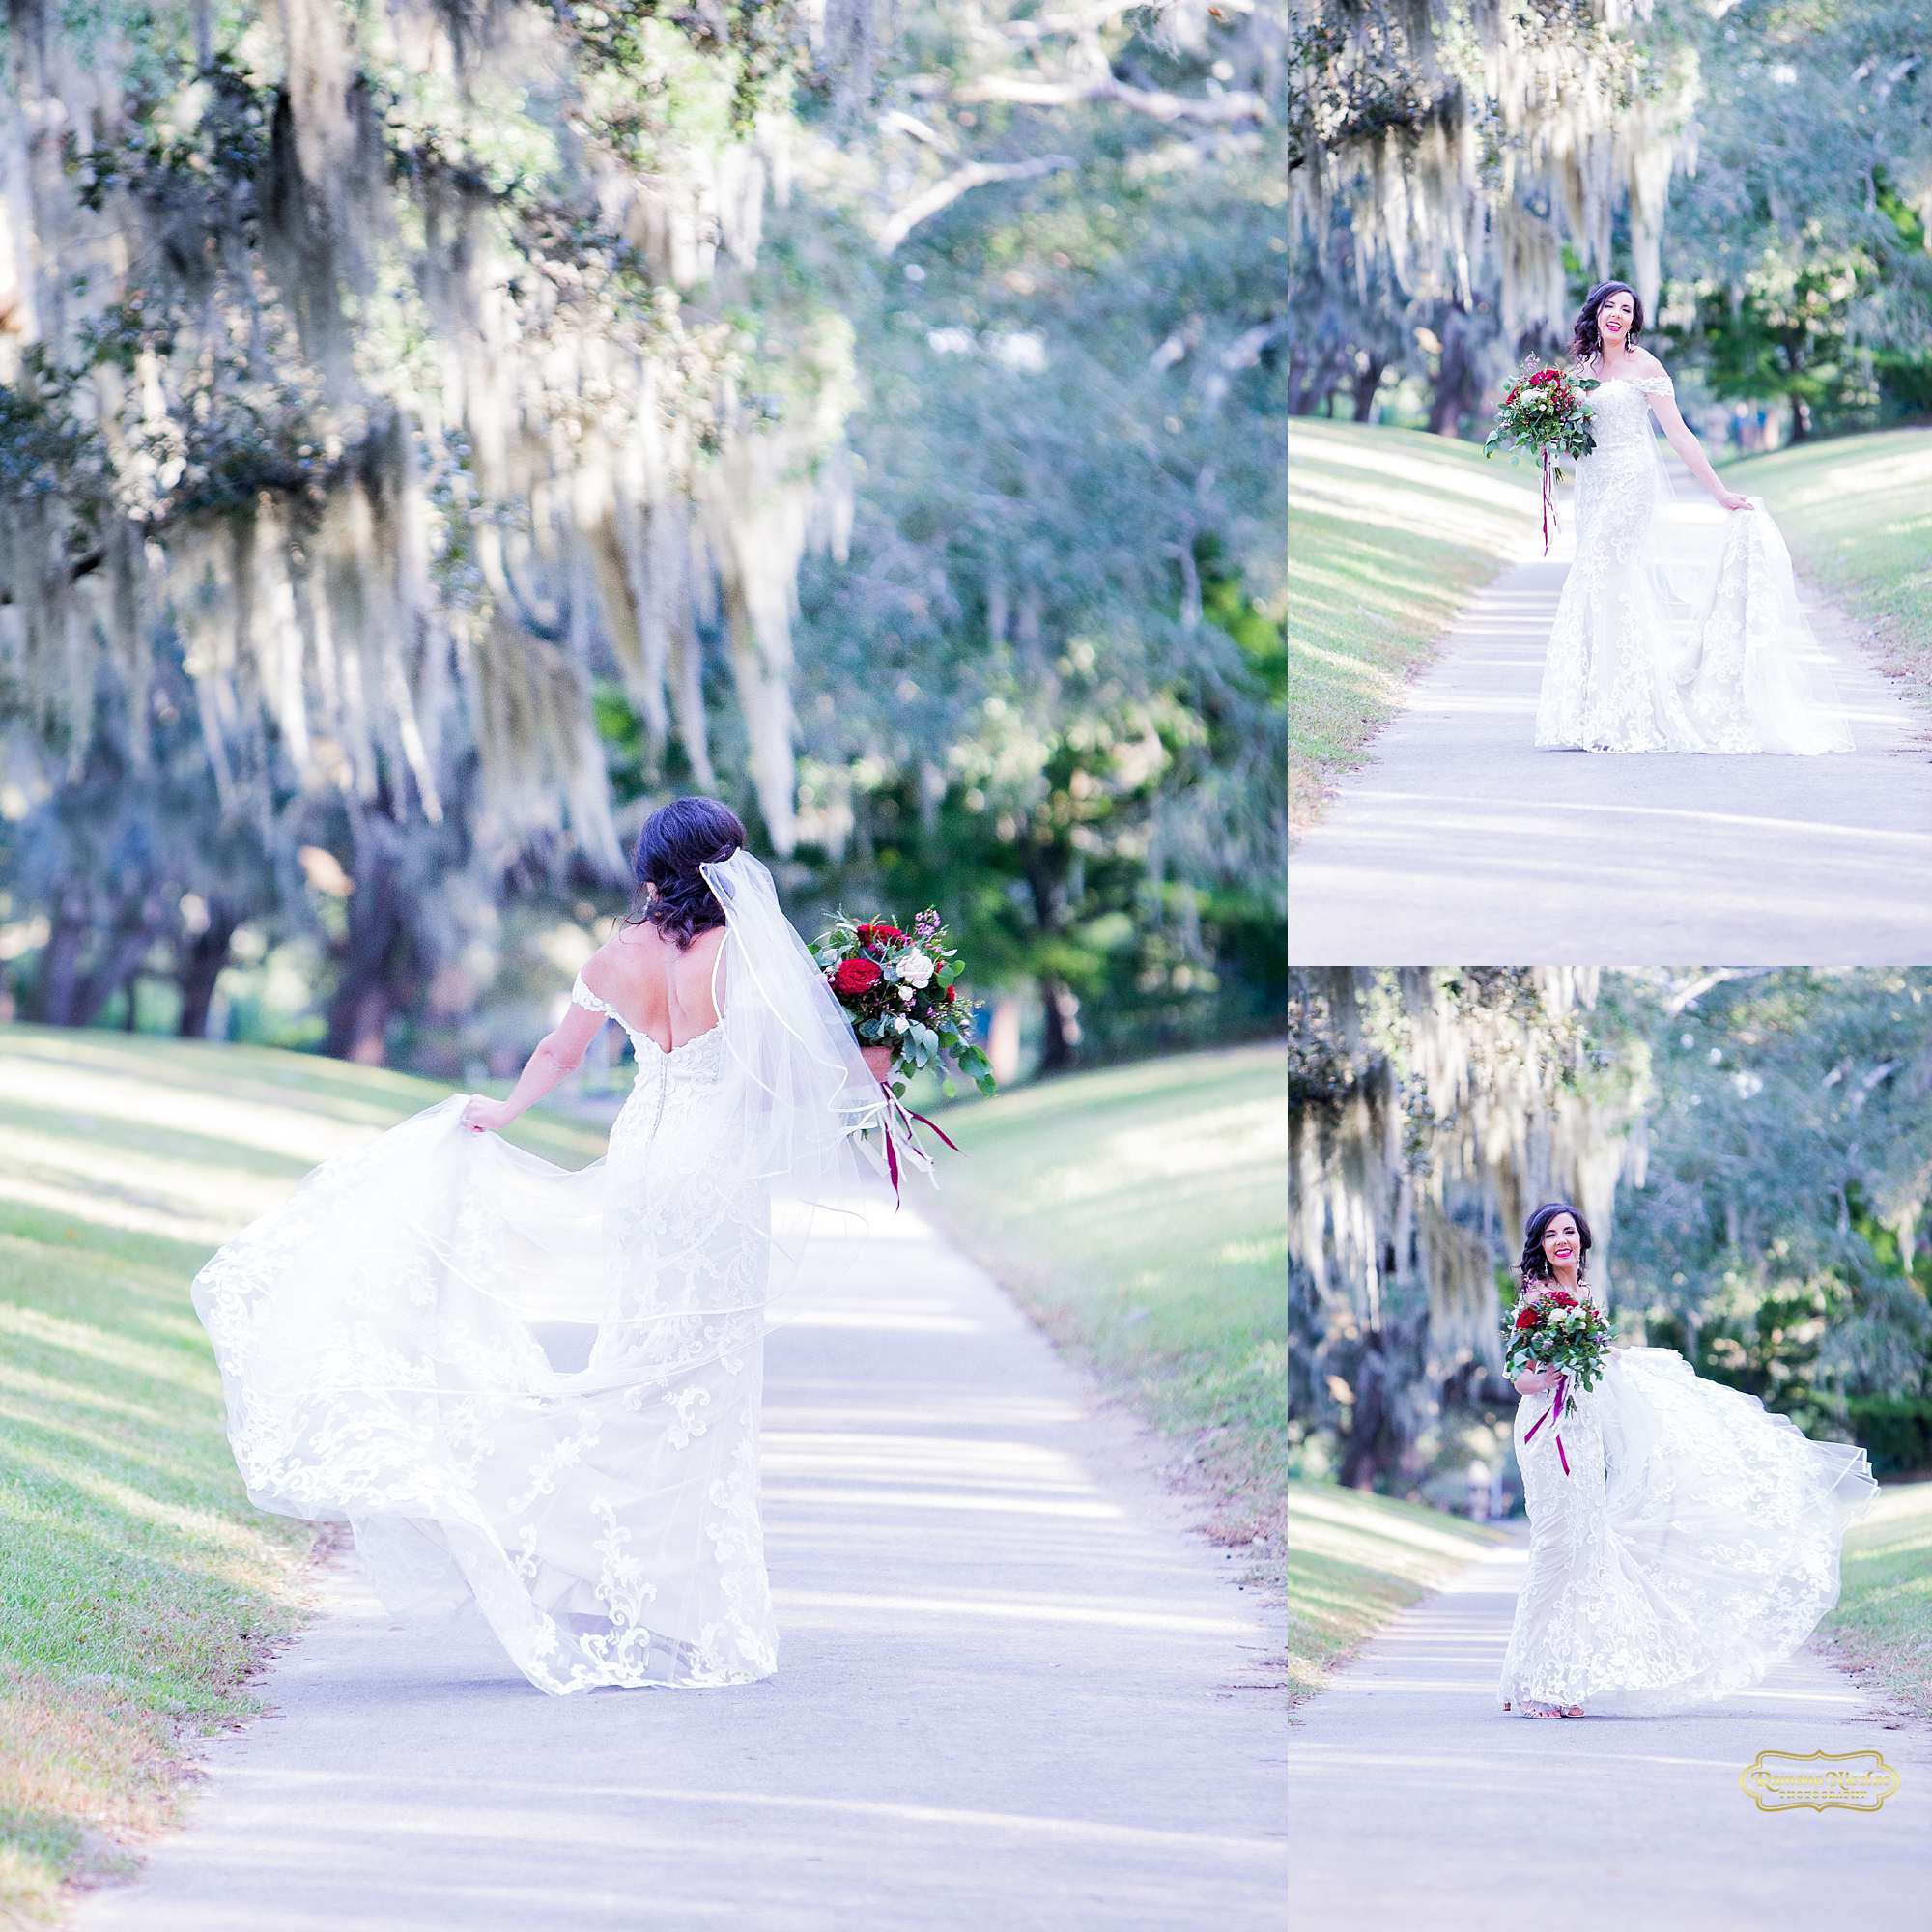 bride laughing and spinning twirling in her wedding dress with red flowers at brookgreen gardens by ramona nicolae photography myrtle beach wedding photographer-5.jpg